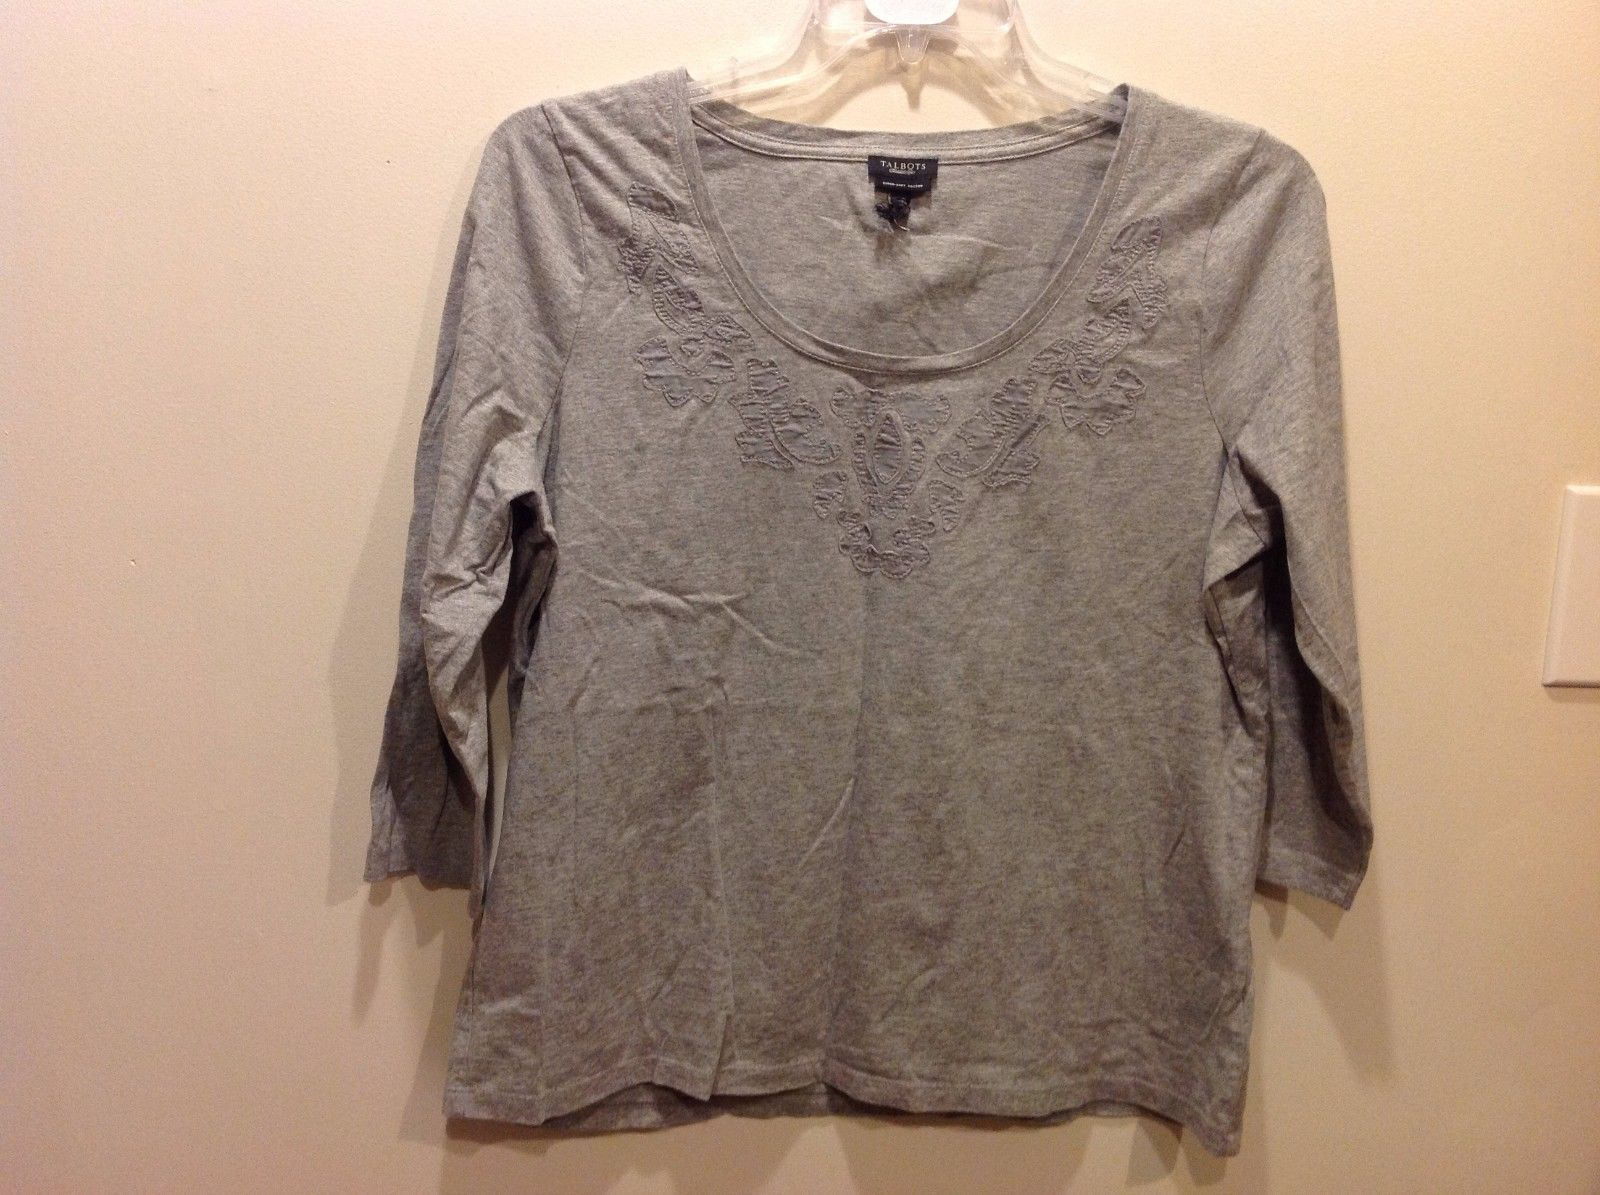 Talbots Lt Gray 3/4 Sleeve Top w Cute Leafy Embroidered Neckline Sz XL